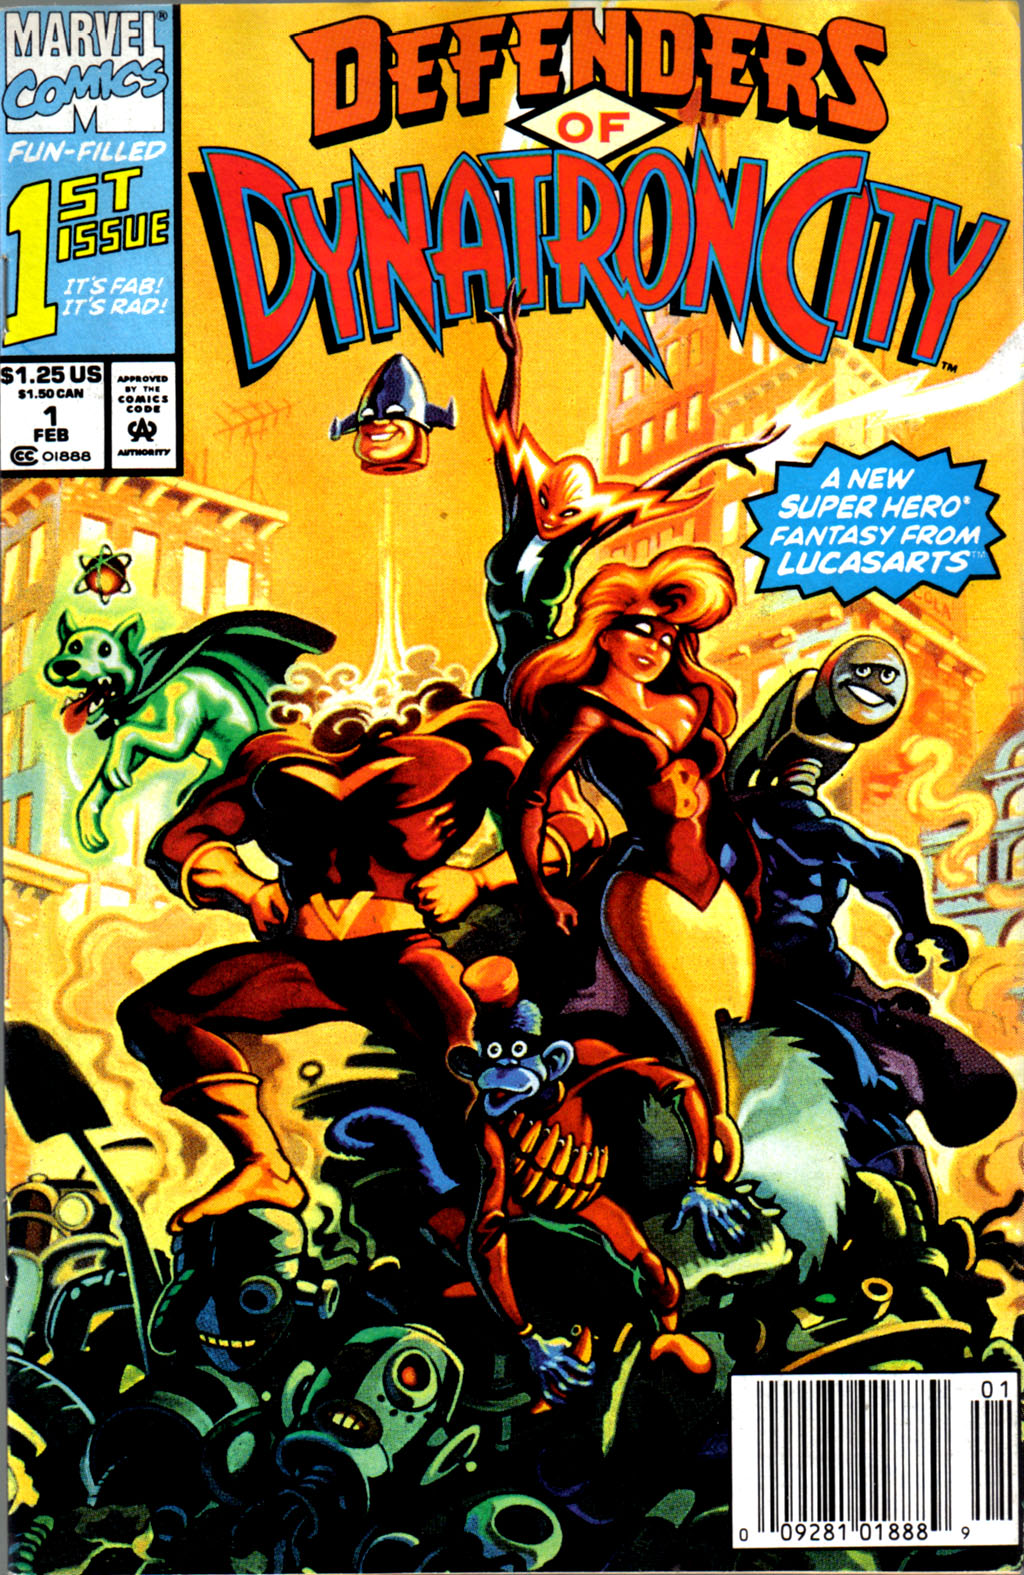 Read online Defenders of Dynatron City comic -  Issue #1 - 1